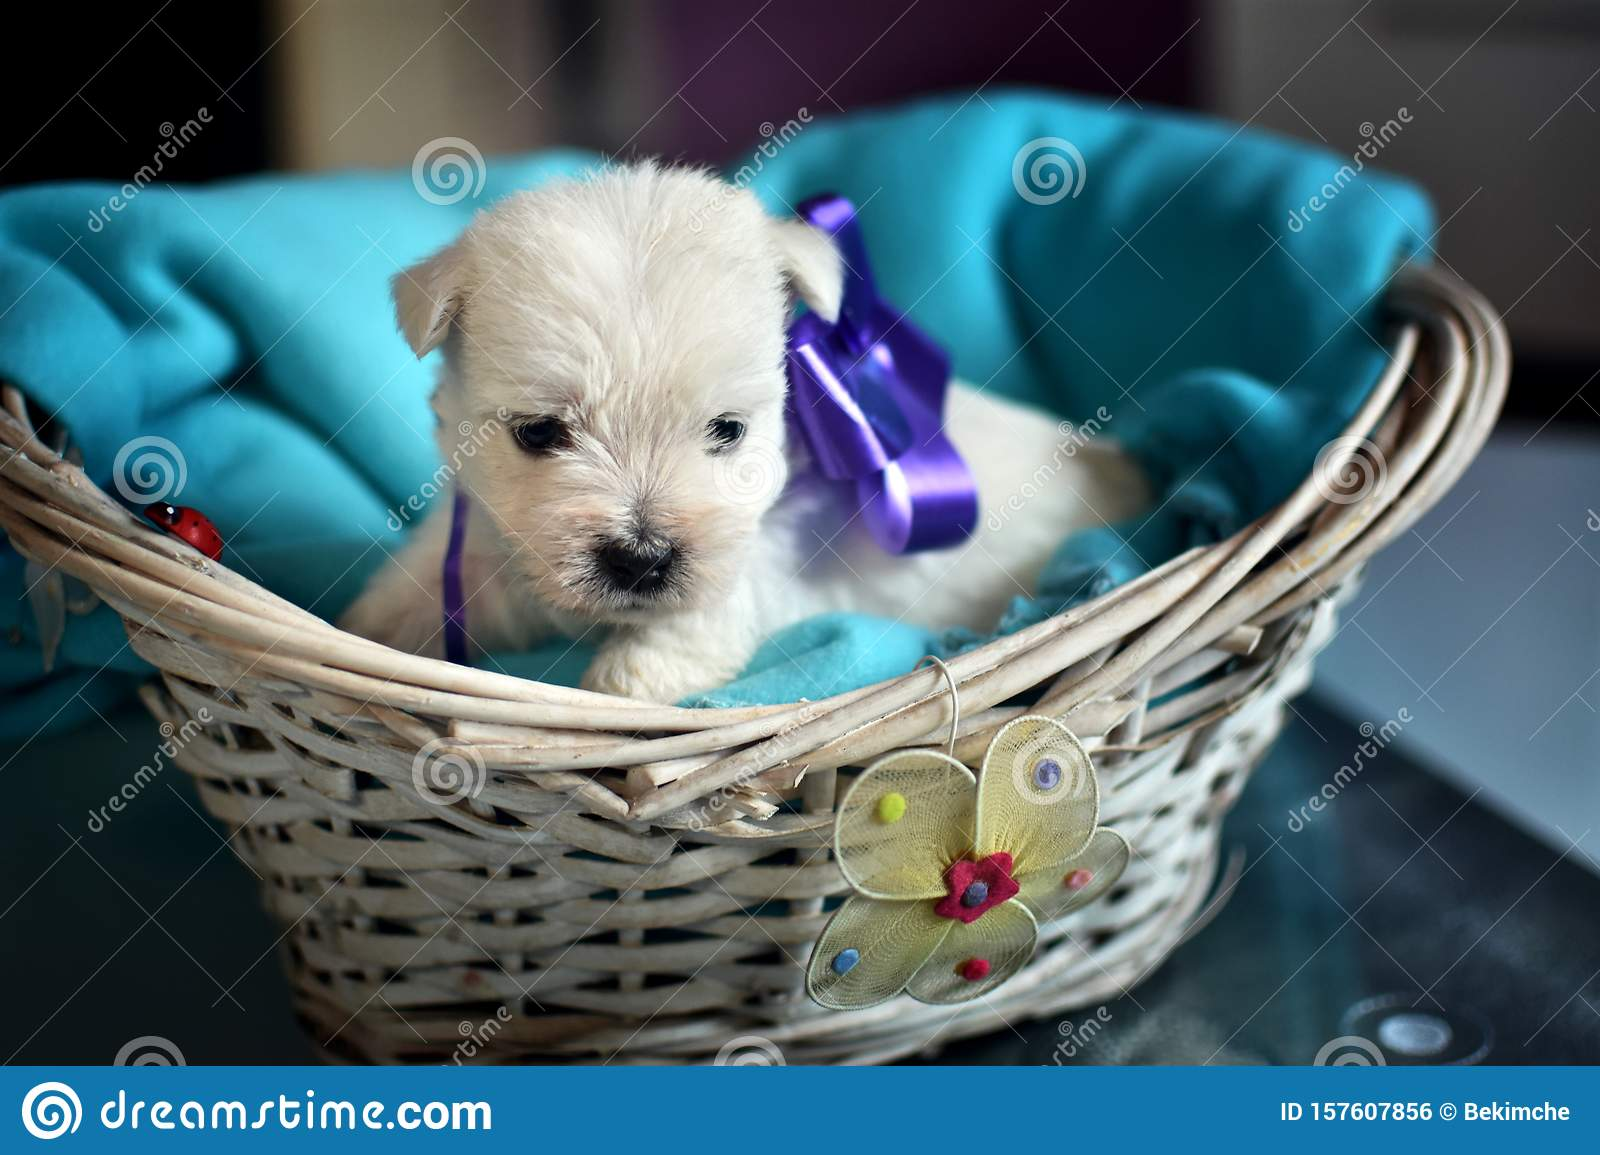 West Highland White Terrier Westie Puppies Stock Photo Image Of Puppy Front 157607856